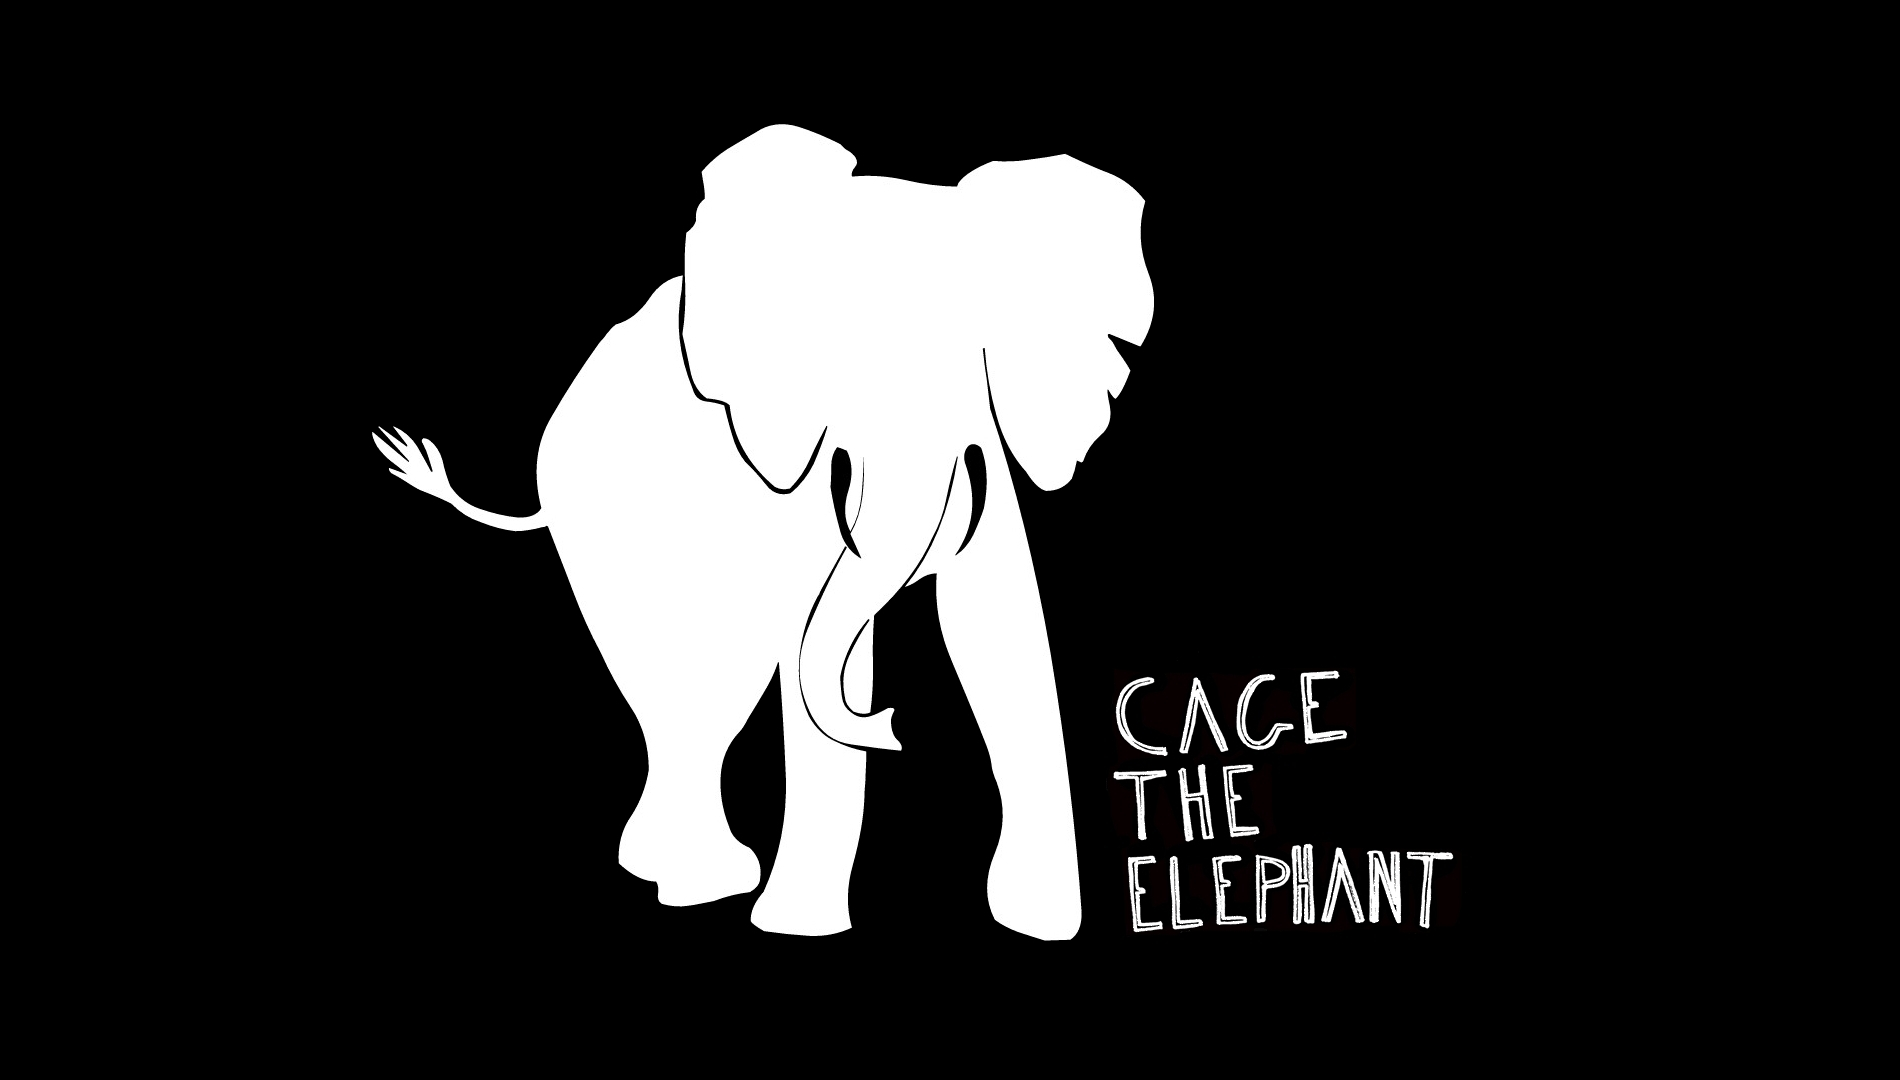 cage the elephant 1900x1080 wallpaper high quality wallpapers,high